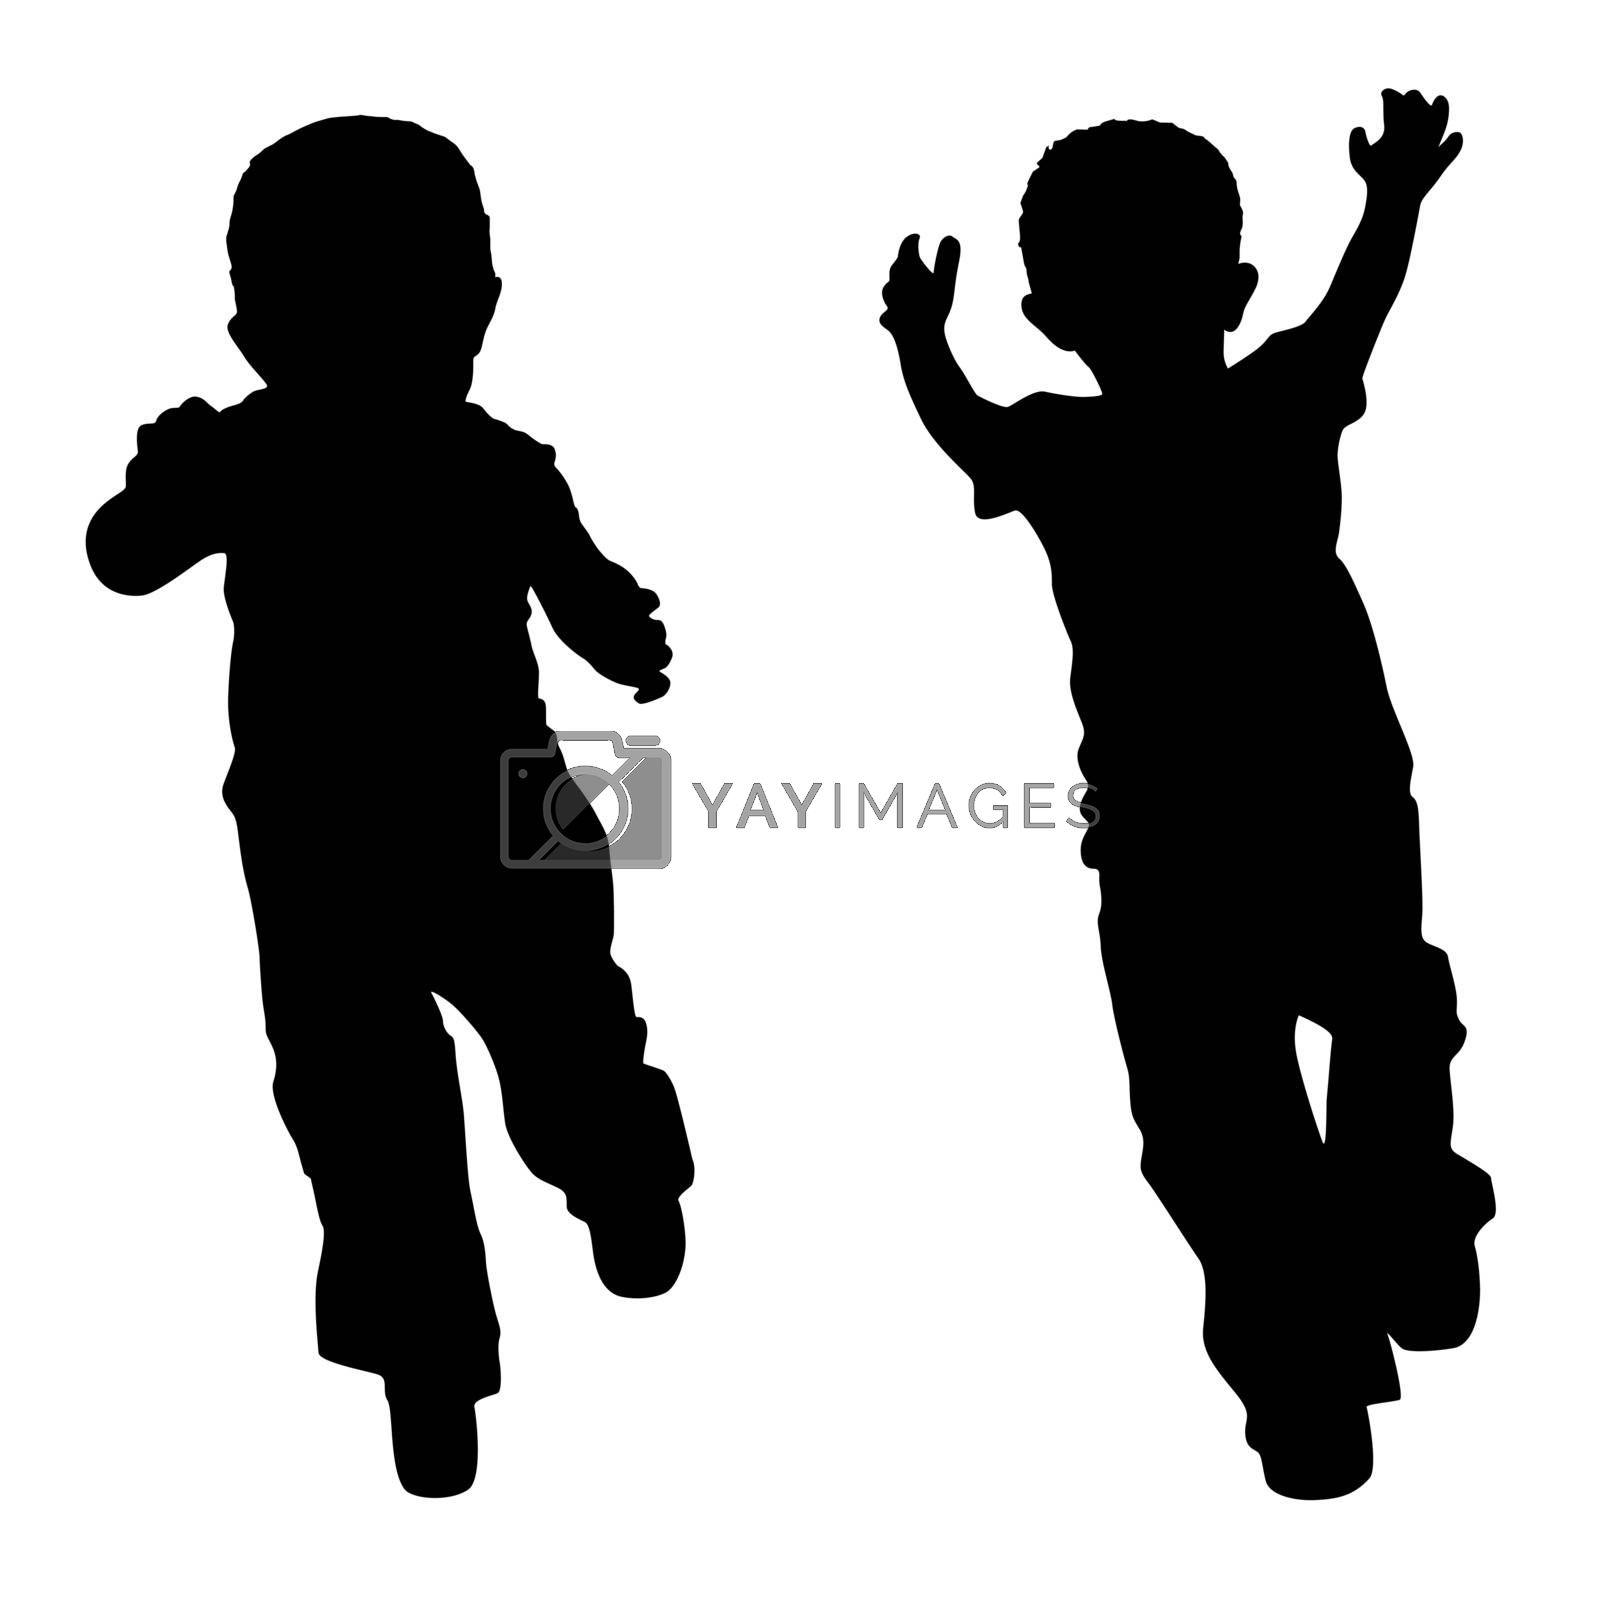 Silhouettes of two little boys who play